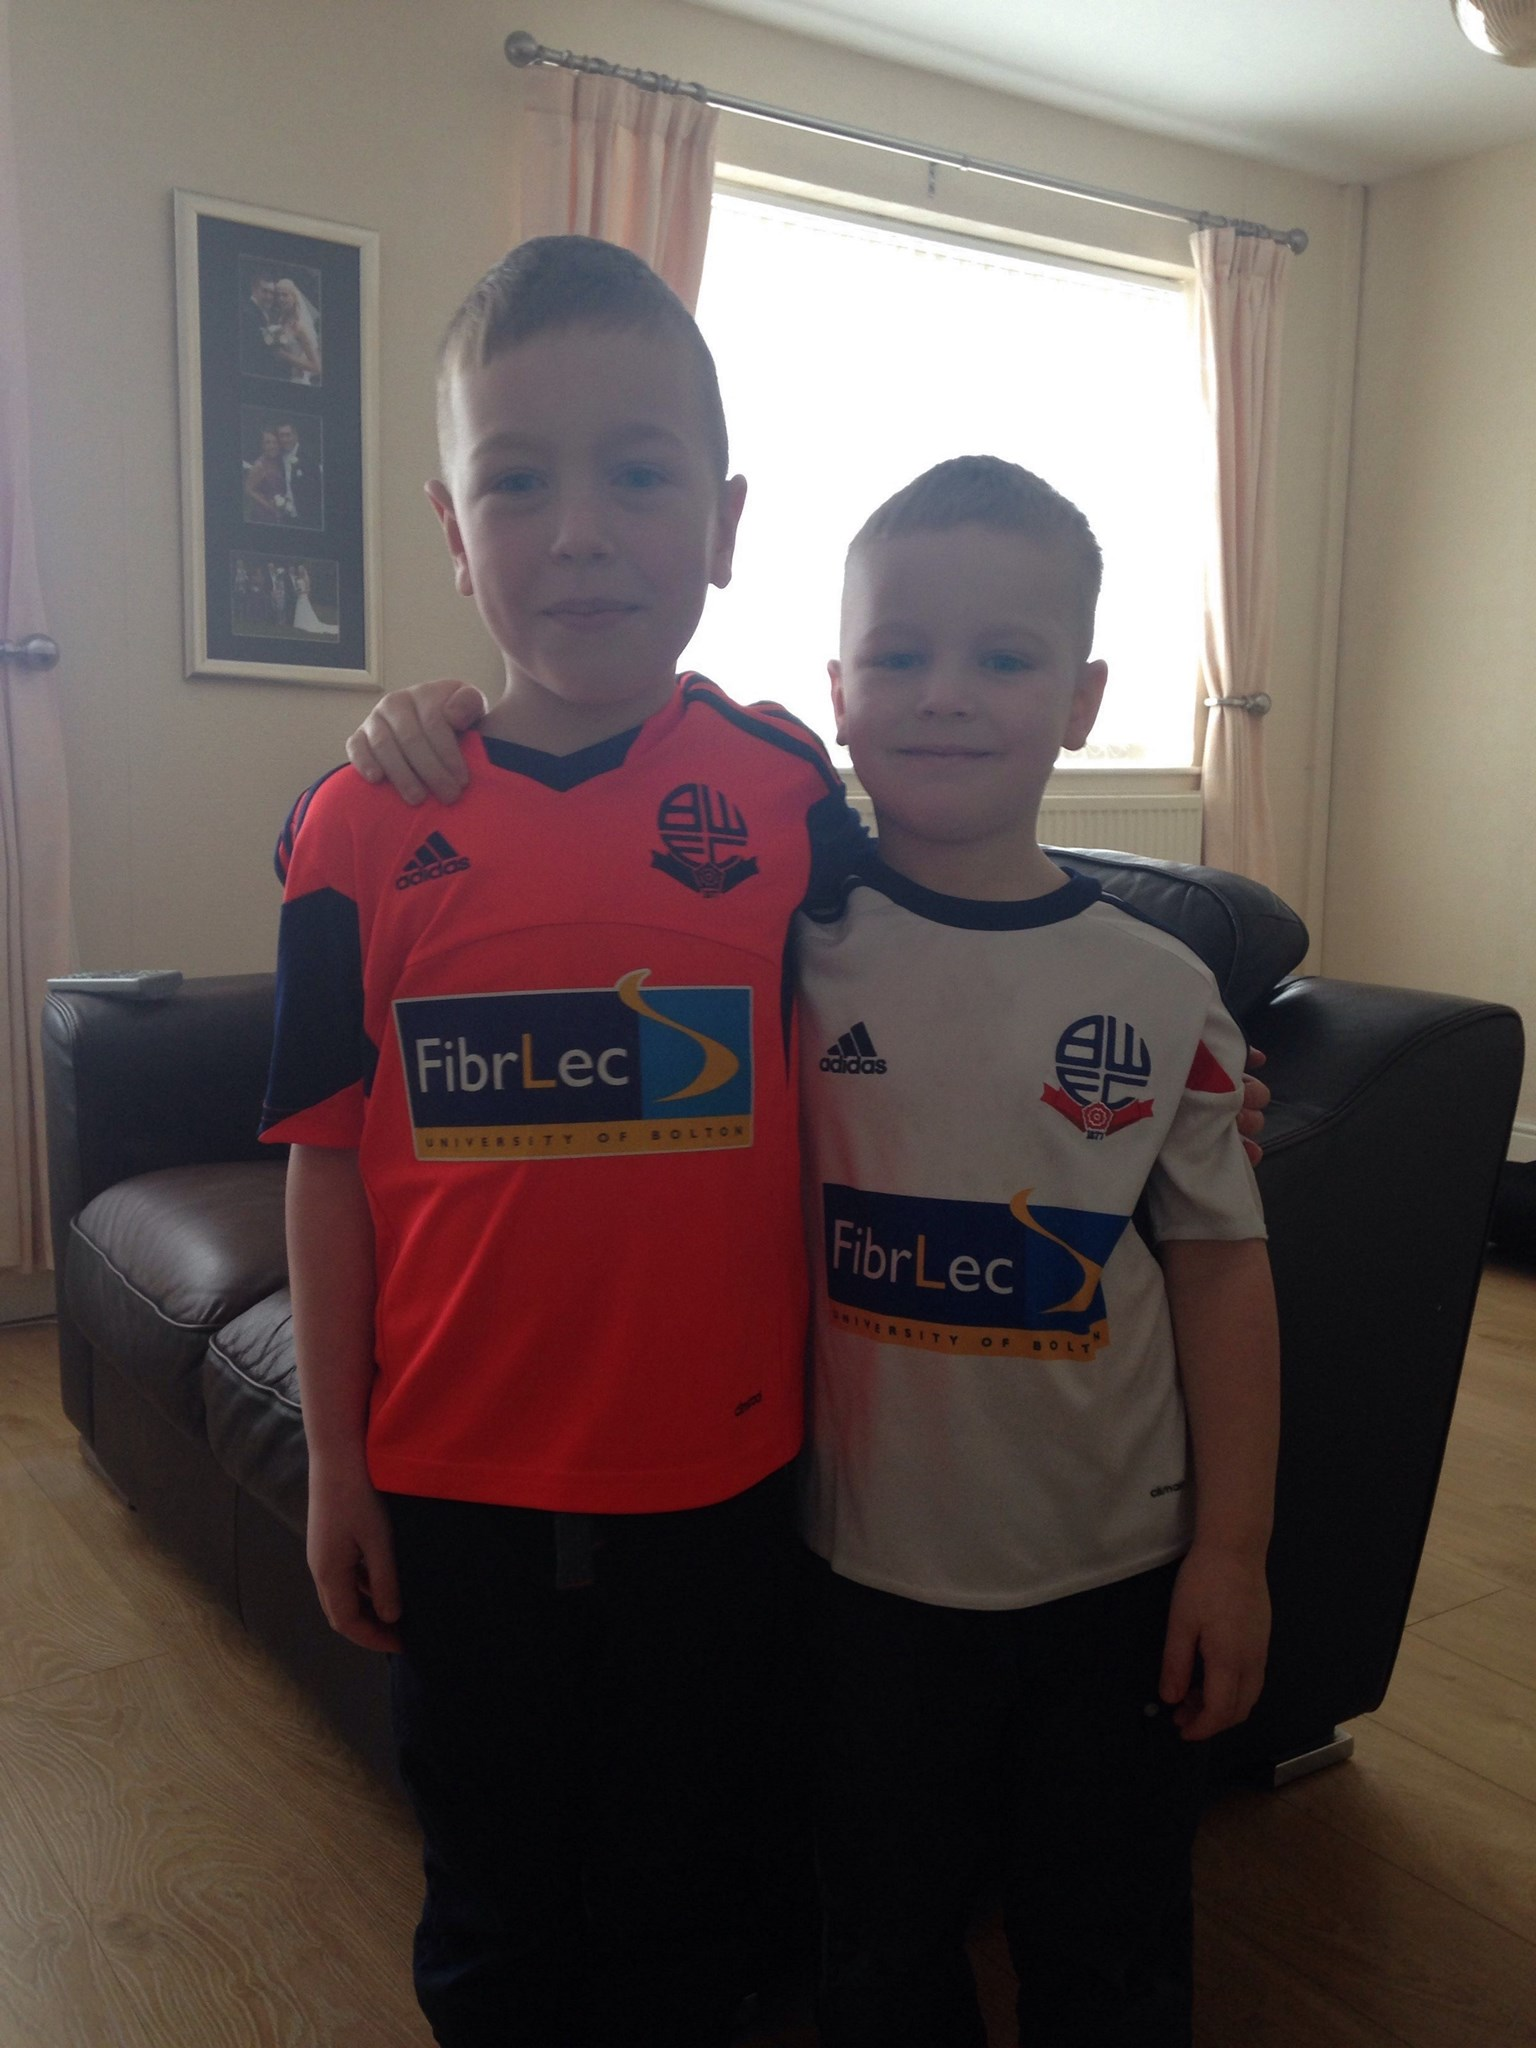 Here are the boys Grandma, looking all grown up ready for their first Bolton match! Thinking of u ??